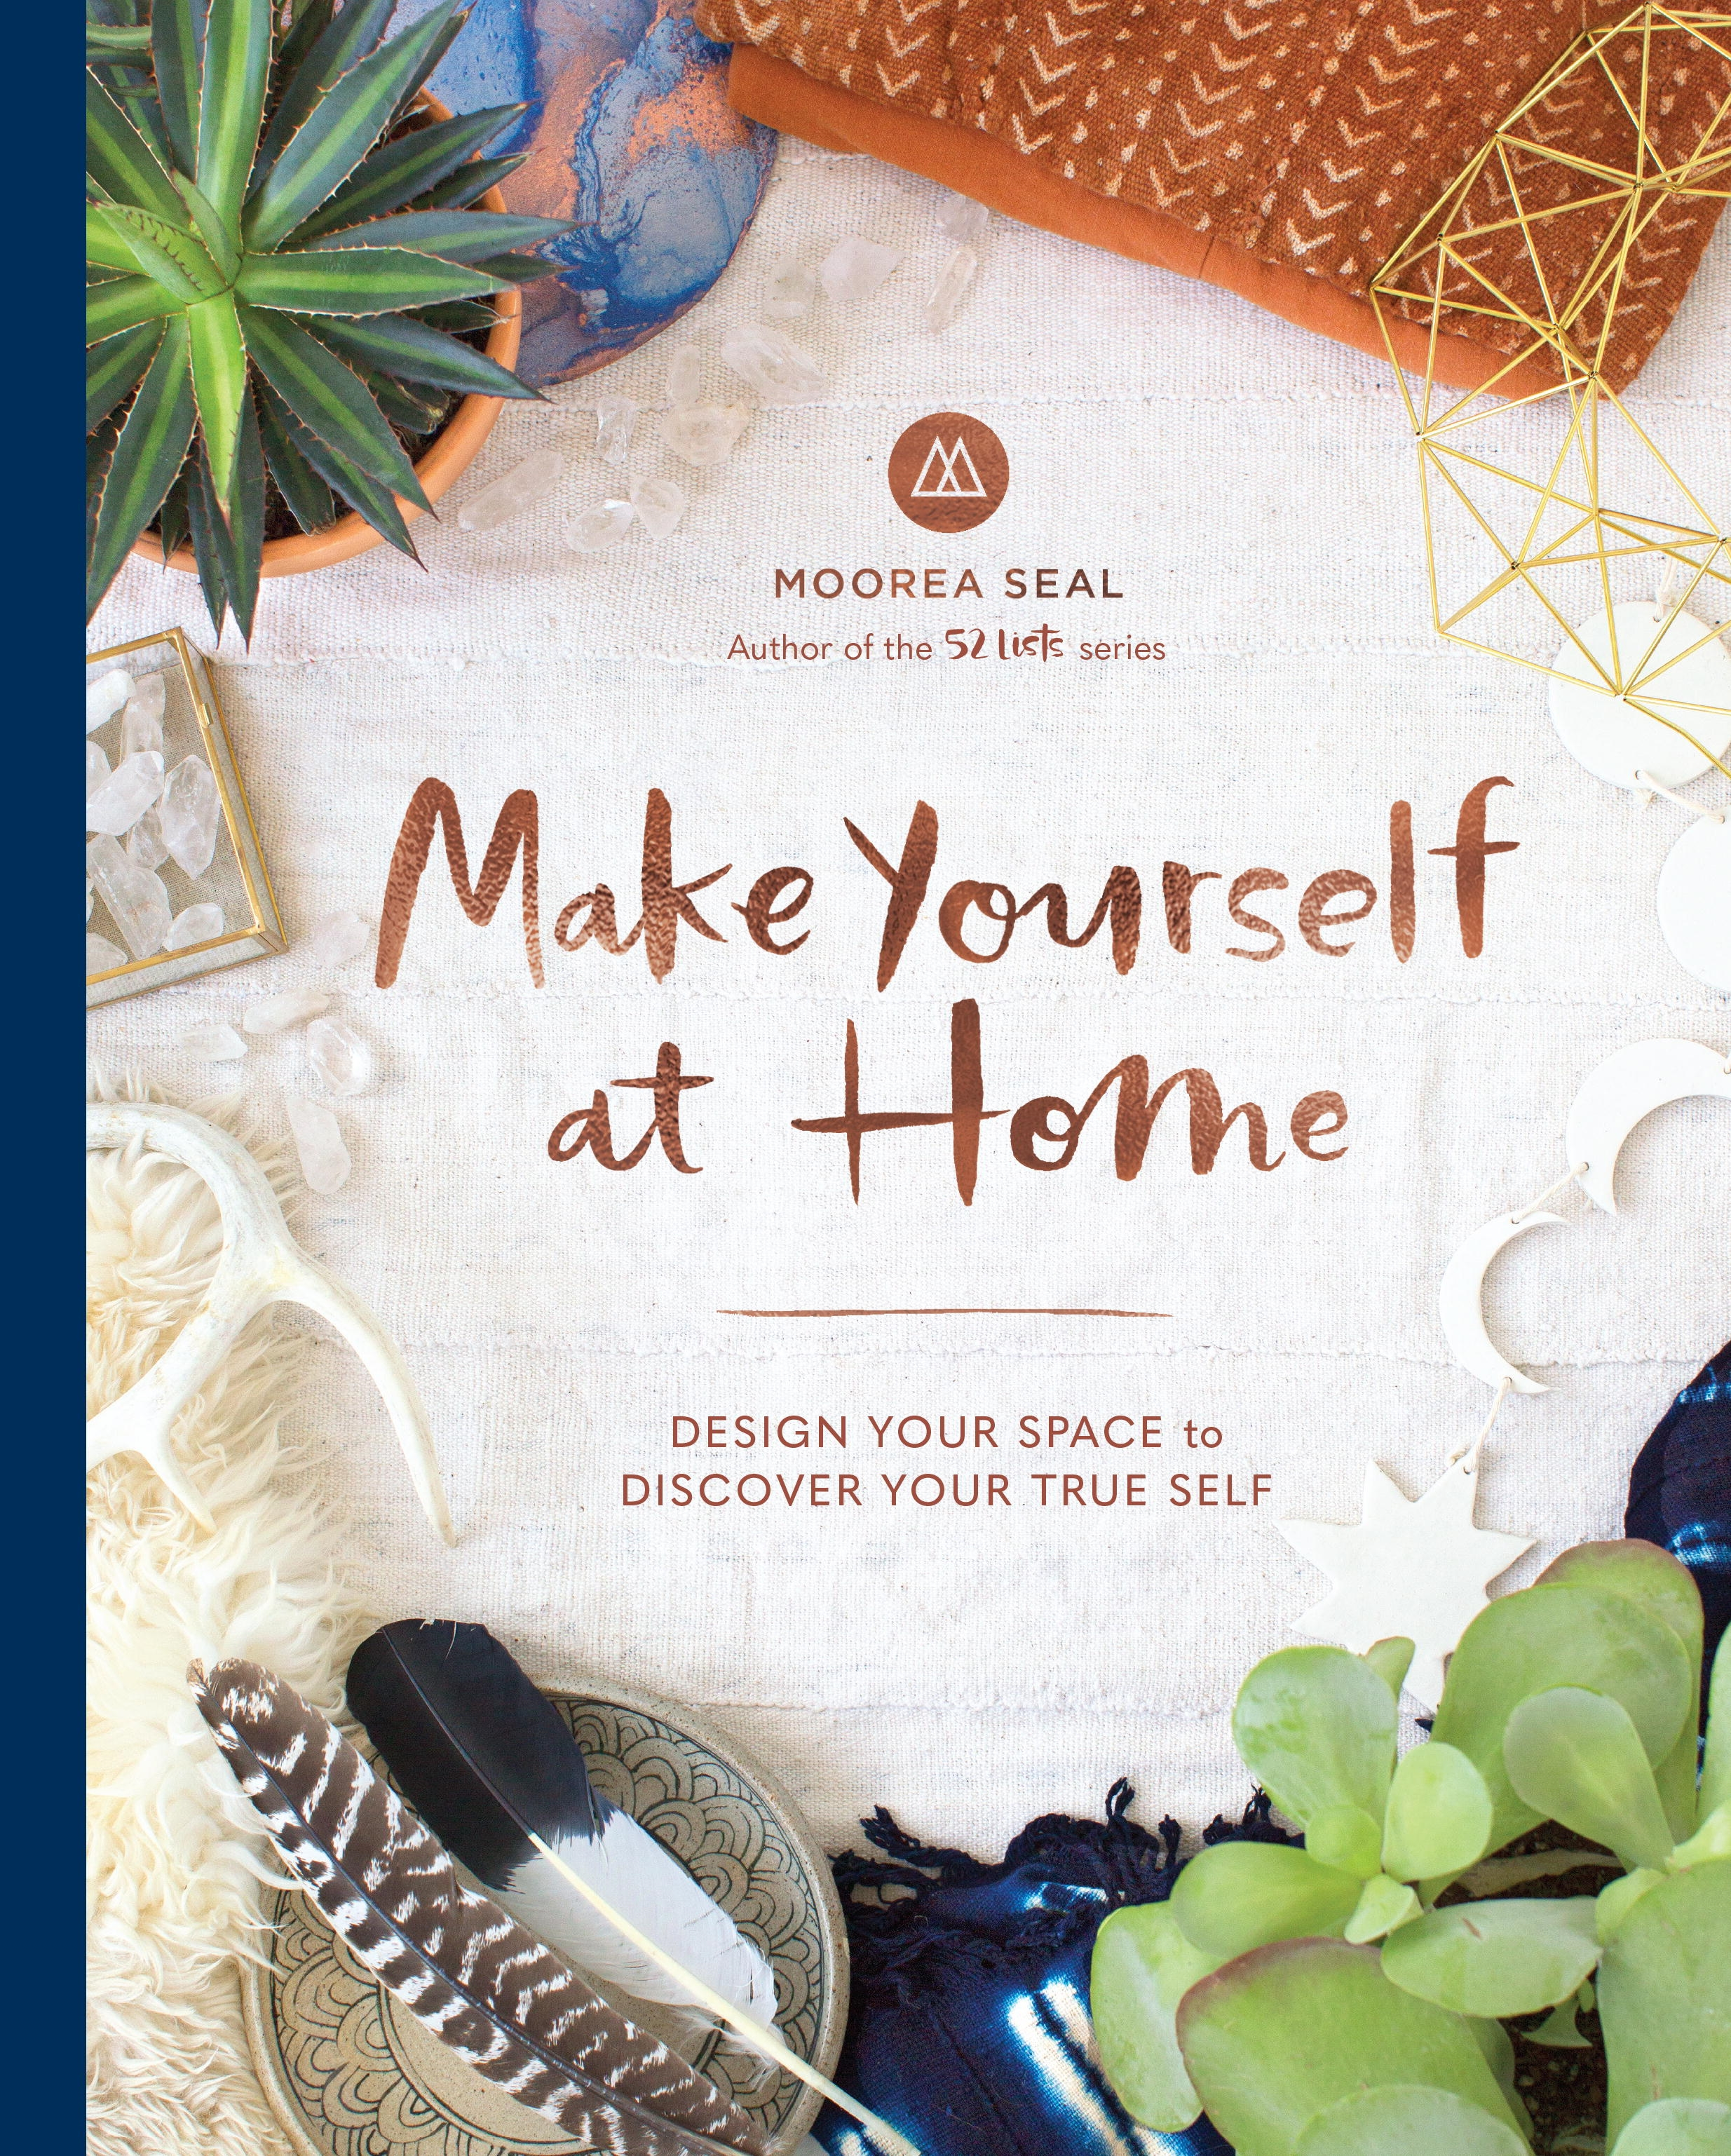 Make yourself at home by moorea seal penguin books australia make yourself at home solutioingenieria Choice Image